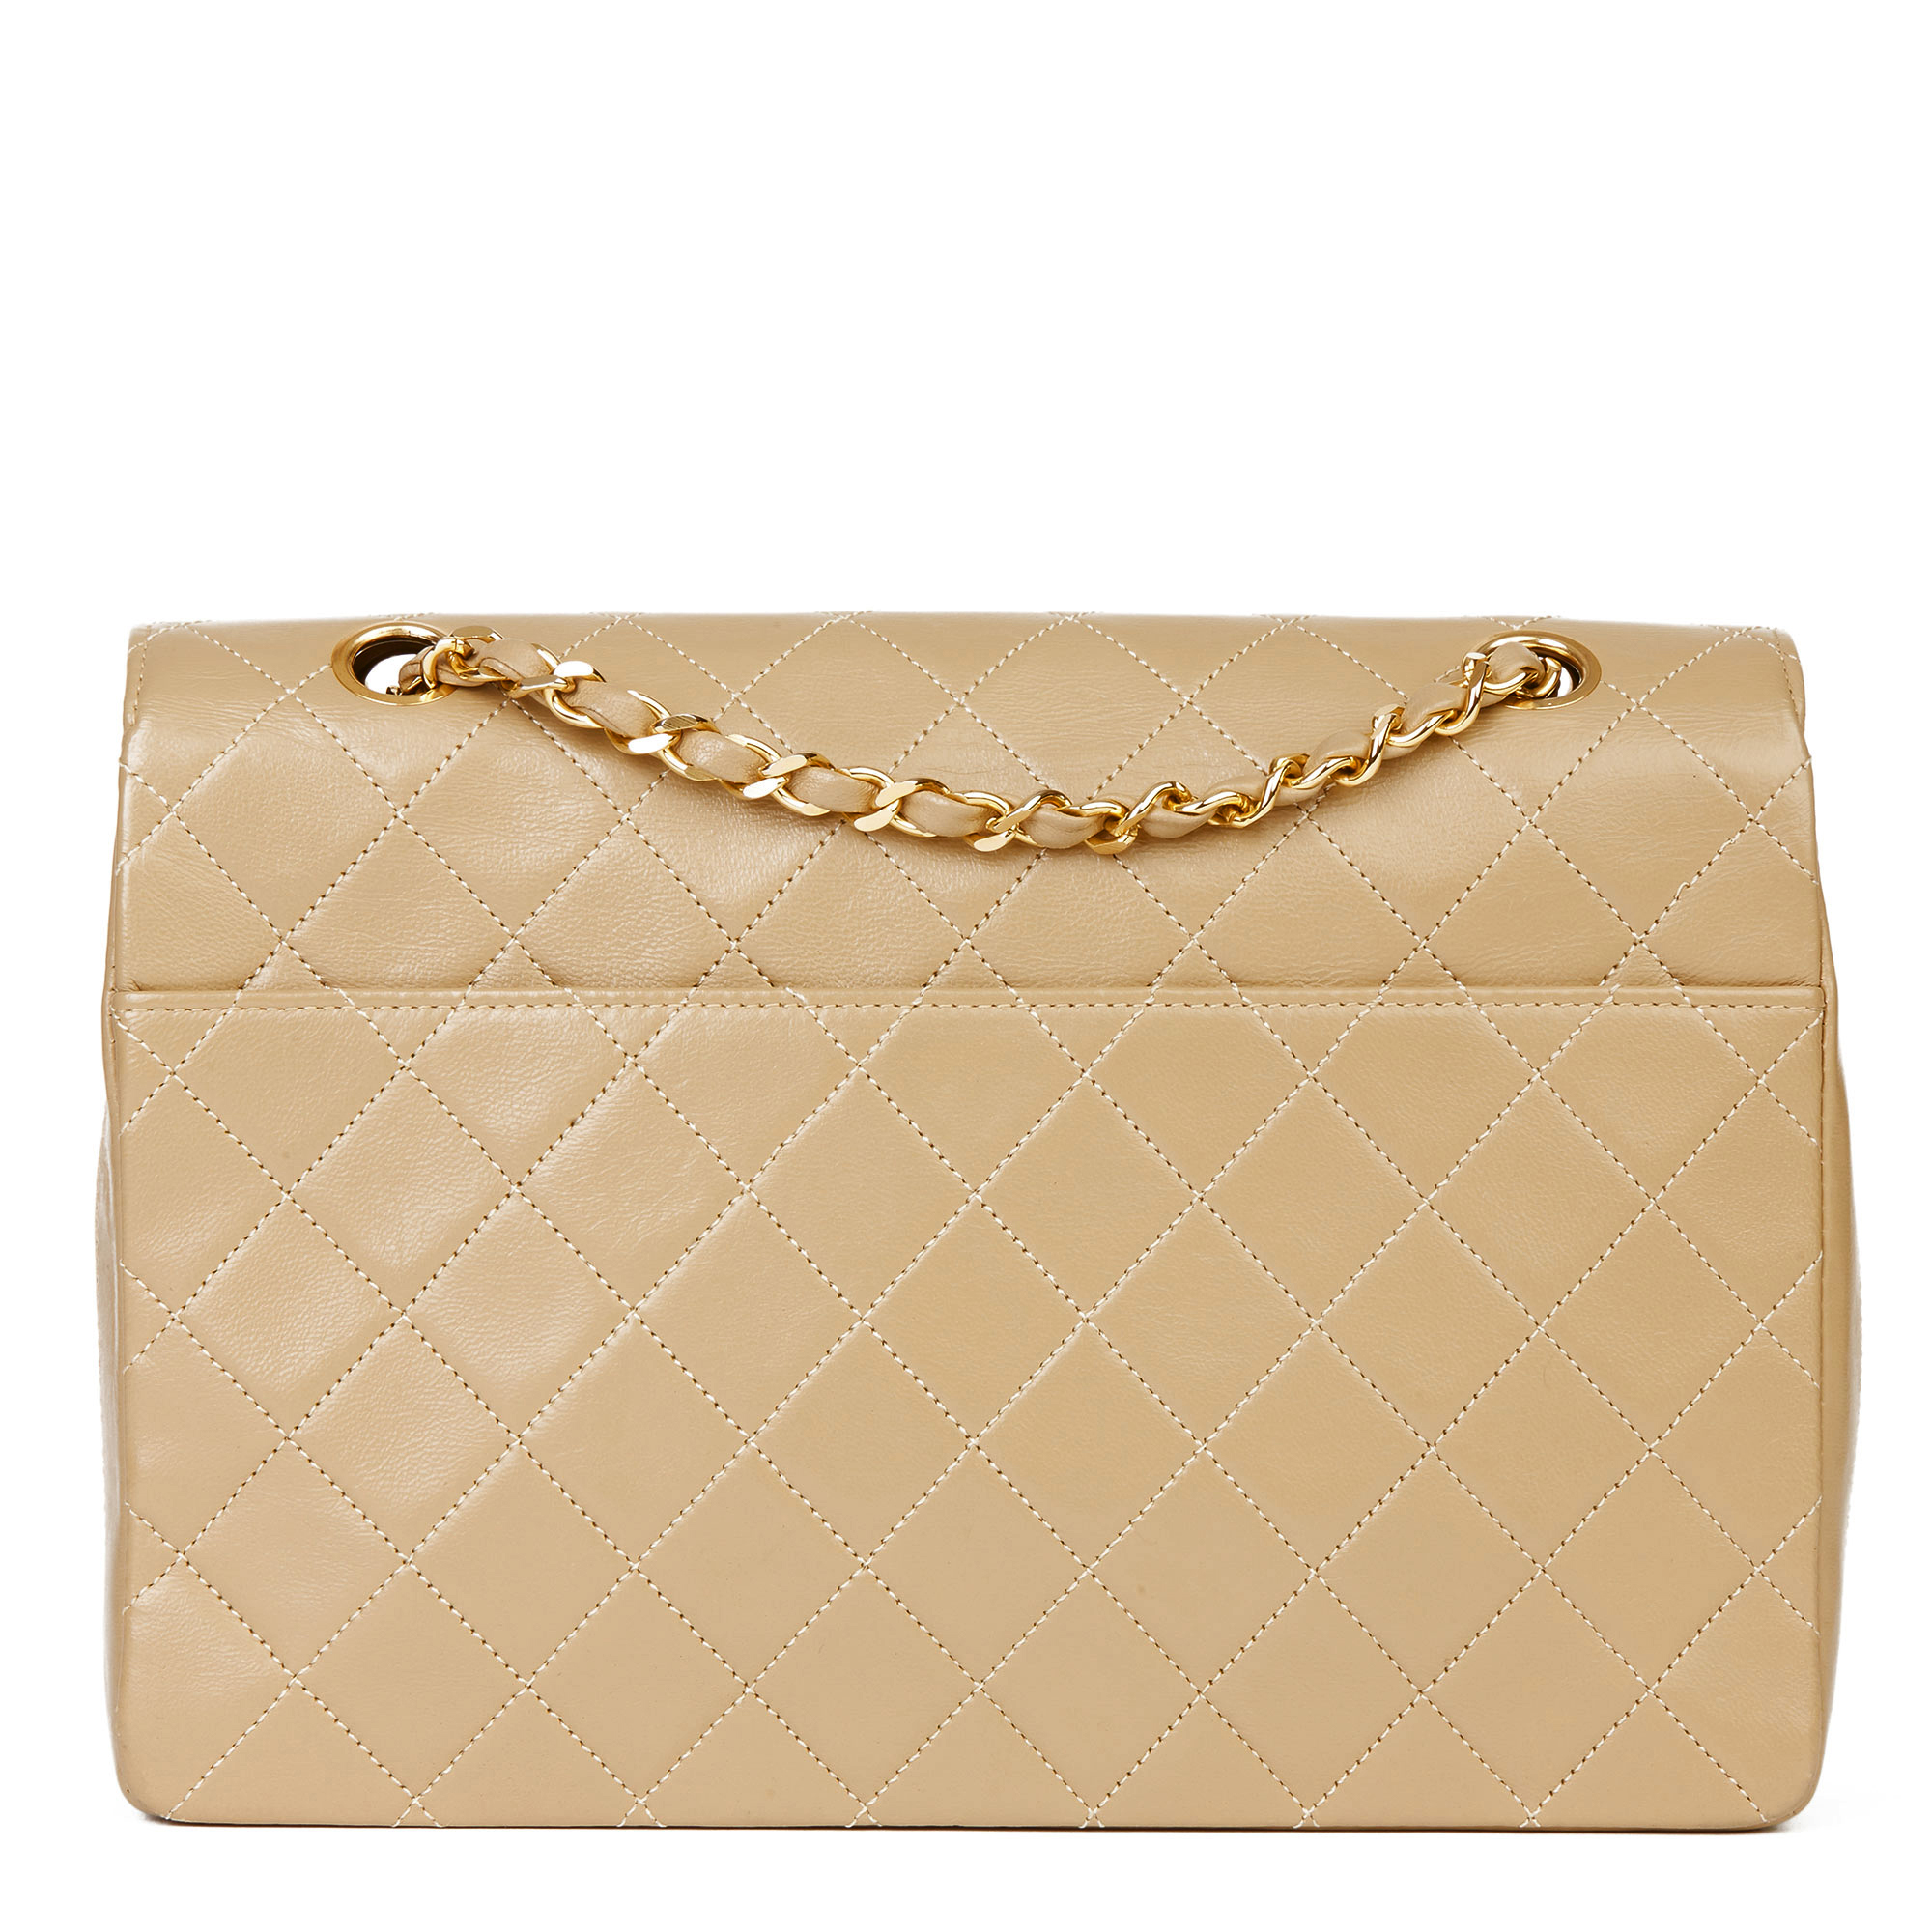 Chanel Dark Beige Quilted Lambskin Vintage Classic Single Flap Bag - Image 9 of 11